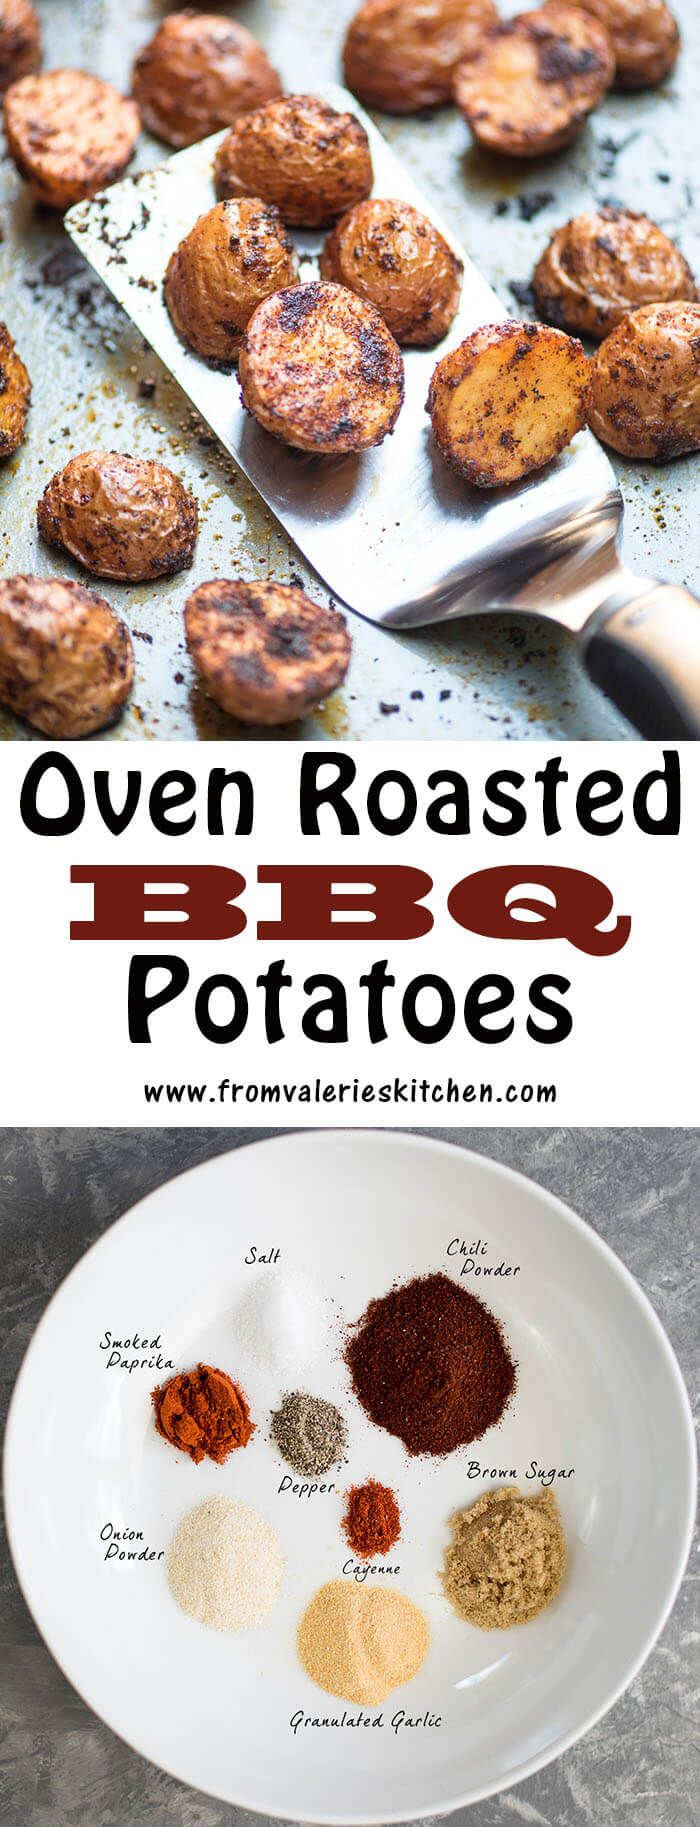 A delicious blend of spices turns baby red potatoes into a super flavorful side dish Add some interest to your plate with these Oven Roasted BBQ Potatoes!